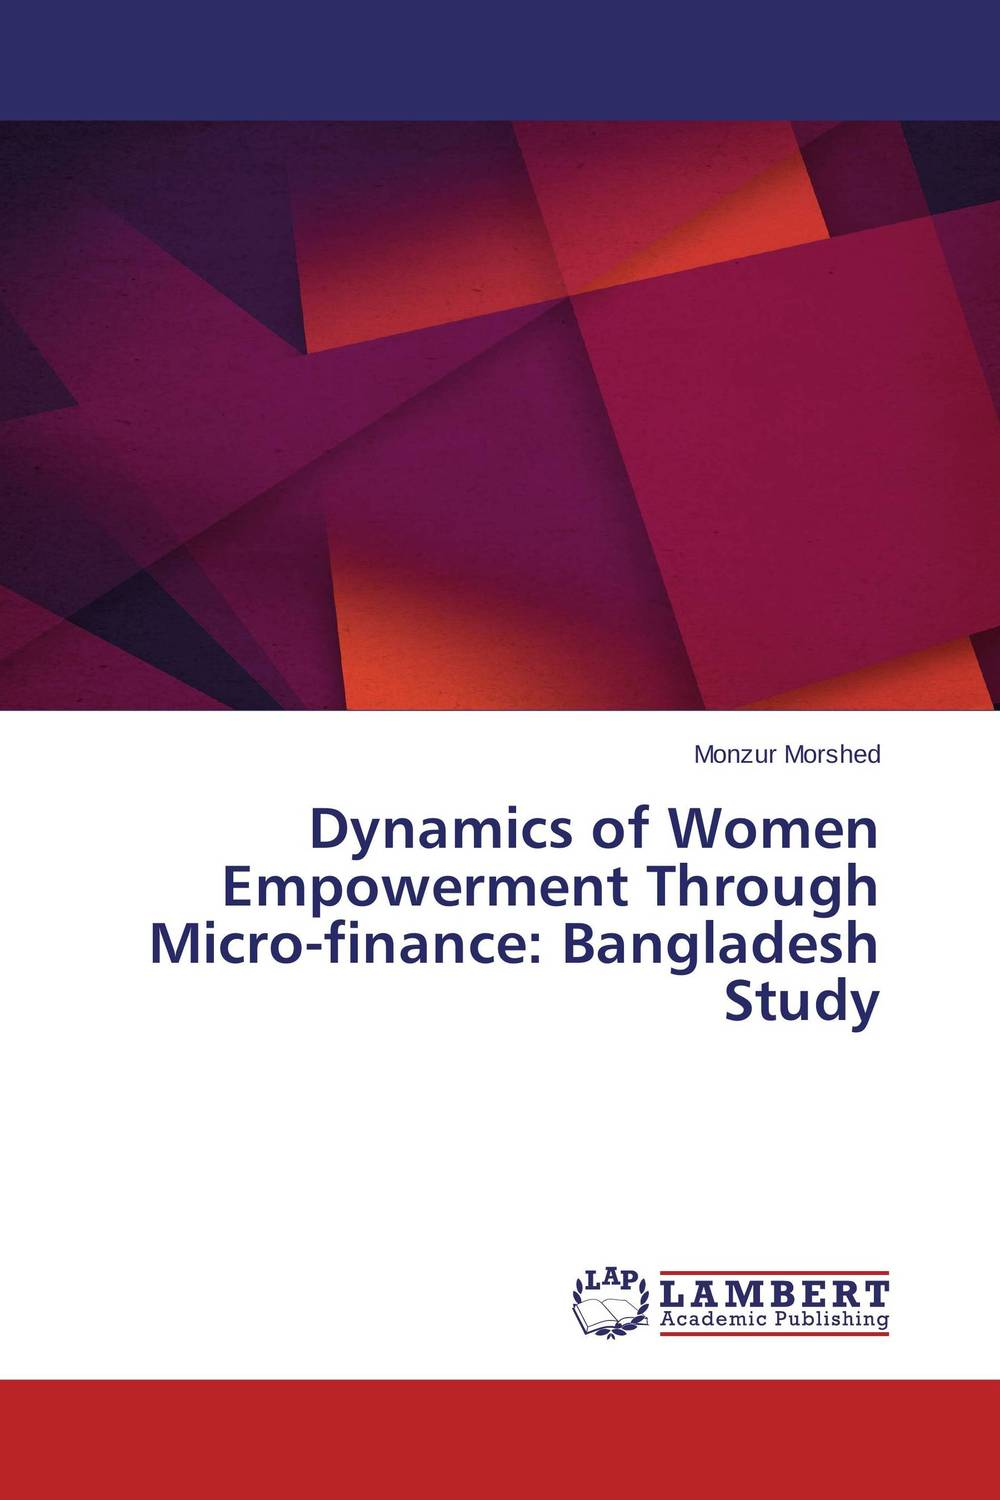 Dynamics of Women Empowerment Through Micro-finance: Bangladesh Study jaynal ud din ahmed and mohd abdul rashid institutional finance for micro and small entreprises in india